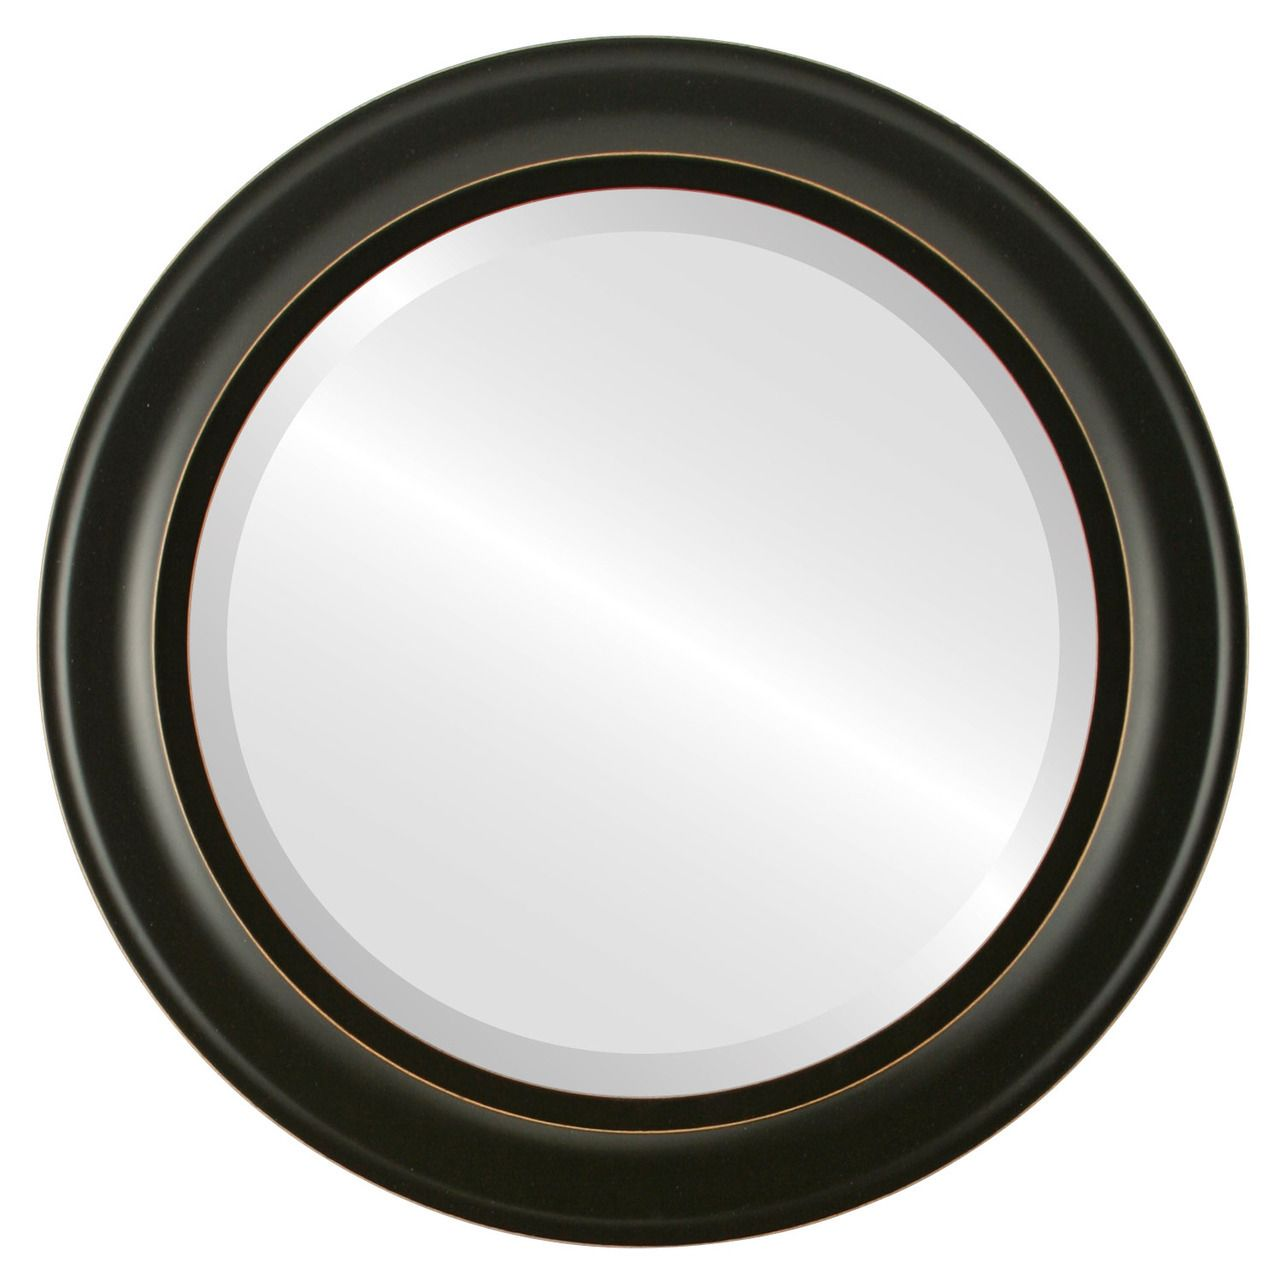 ac30e3c9065 Round Framed Mirror  871 Messina Rubbed Black Finish in 2019